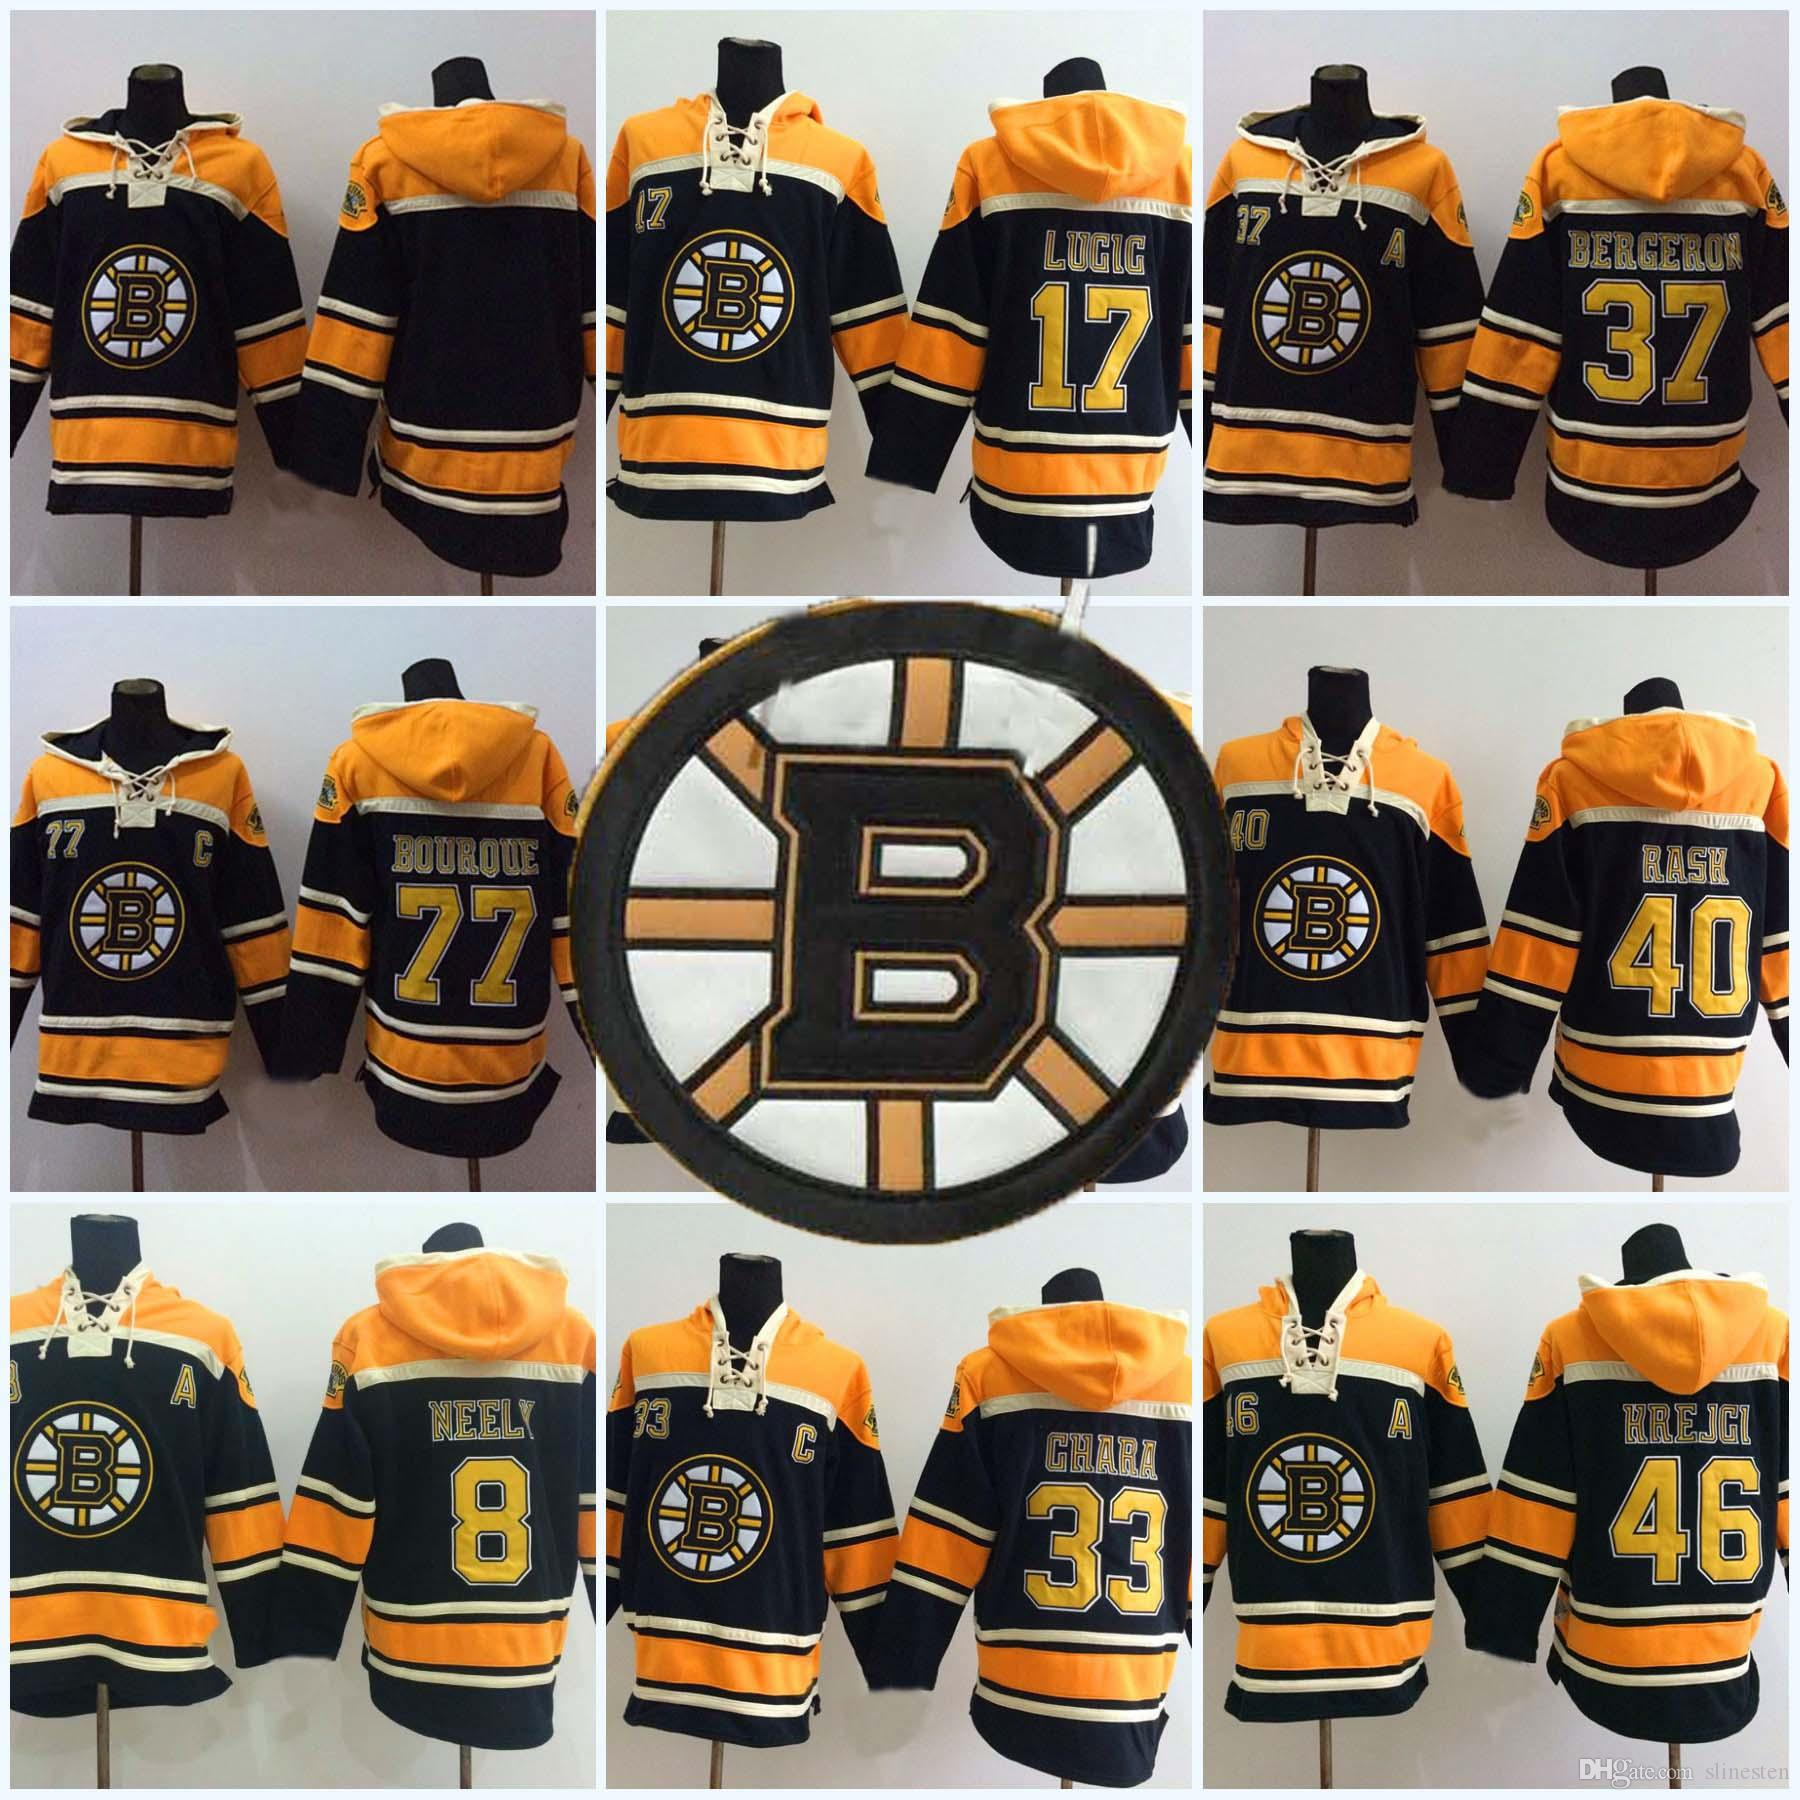 f4cb90fcd94 2019 Hockey Jerseys Cheap 40 Tuukka Rask 8 Cam Neely 17 Milan Lucic 22  Shawn Thornton 46 David Krejci Men'S Hoodie Sweater Hockey Jersey From  Slinesten, ...